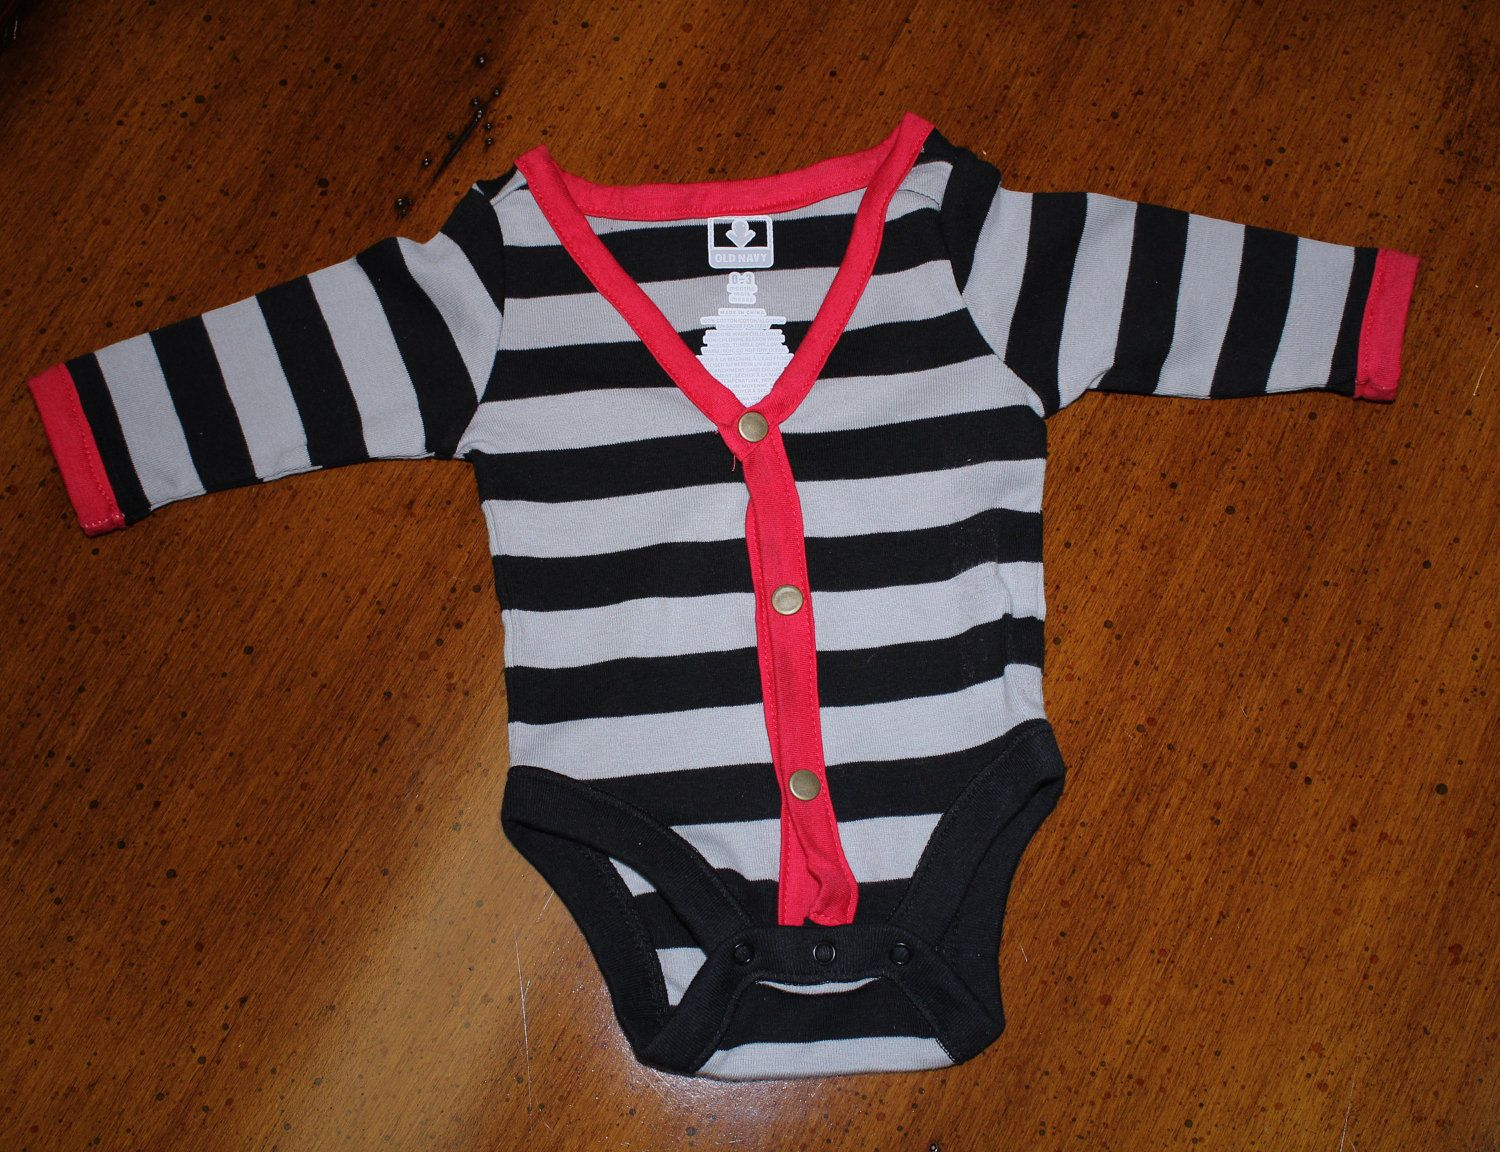 Striped+VNeck+Cardigan+Baby+Onsie+with+by+DichotomyArts+on+Etsy,+$22.00